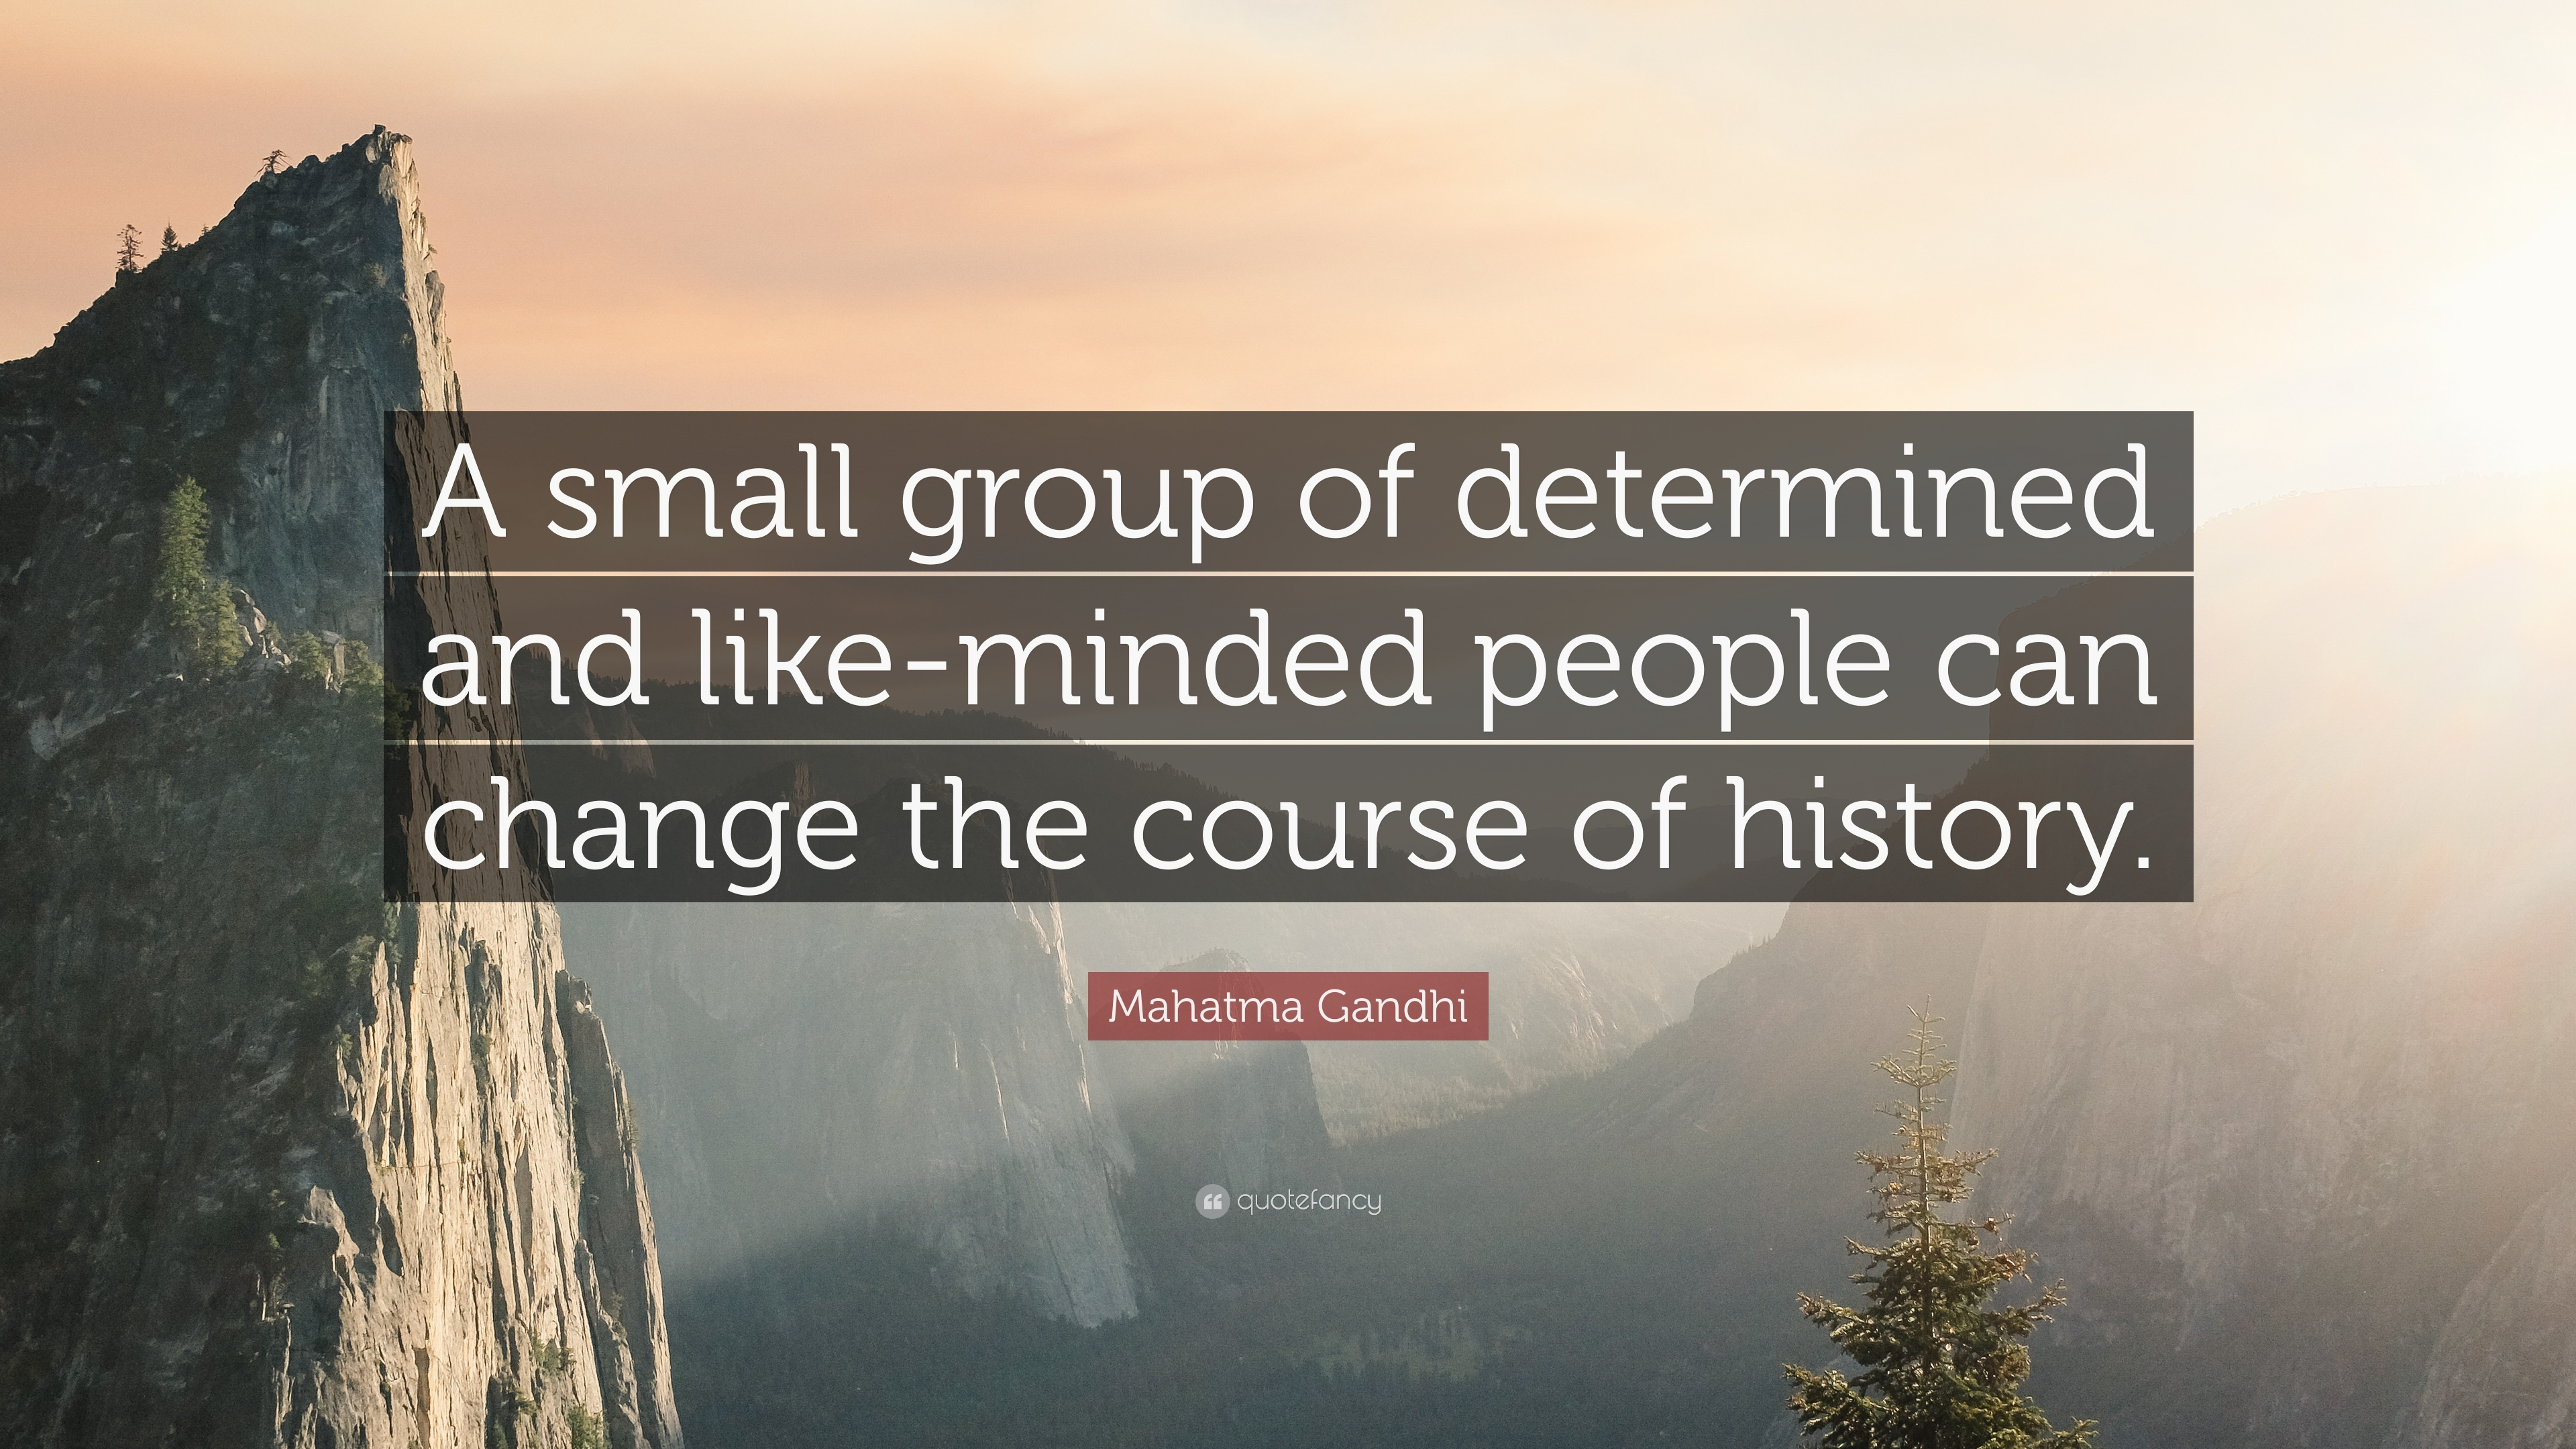 """Mahatma Gandhi Quote: """"A small group of determined and like-minded people  can change the course of history."""" (12 wallpapers) - Quotefancy"""